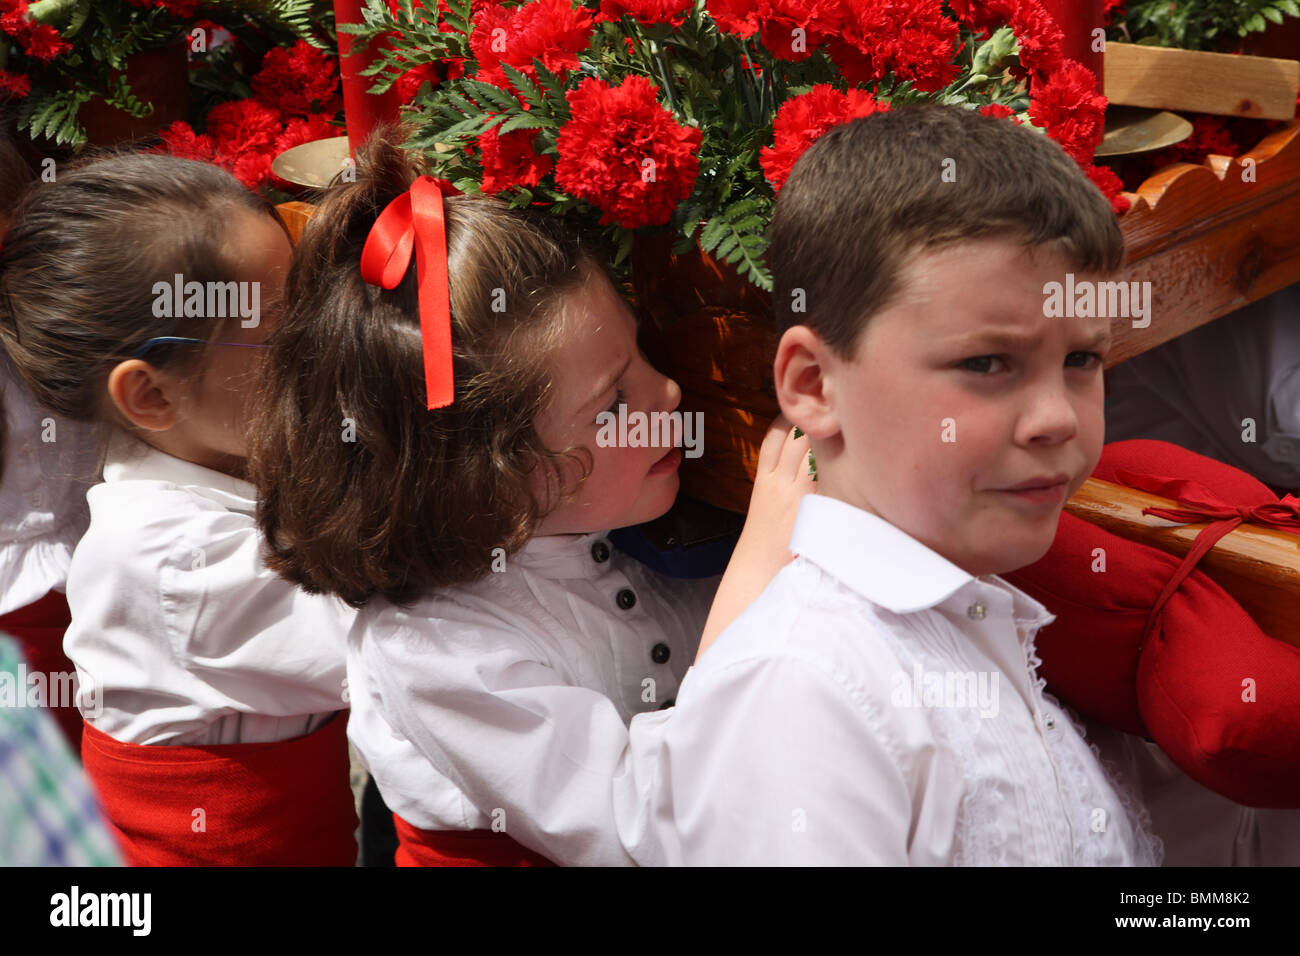 children-carrying-a-religious-float-or-p